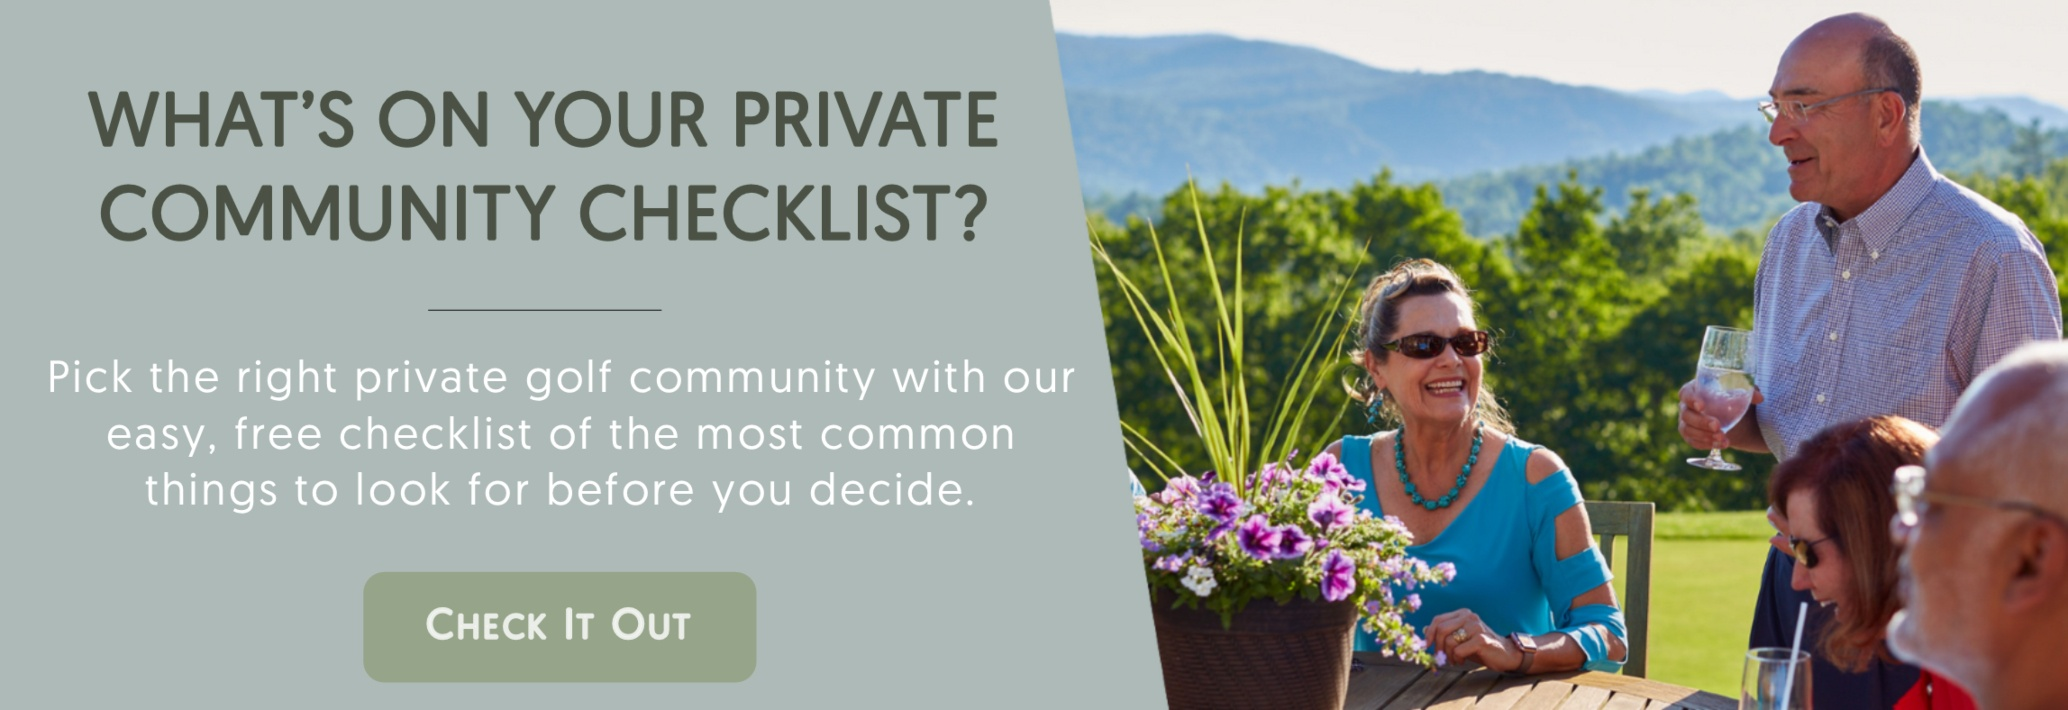 Private Community Relocation & Retirement Checklist CTA 2 – Champion Hills